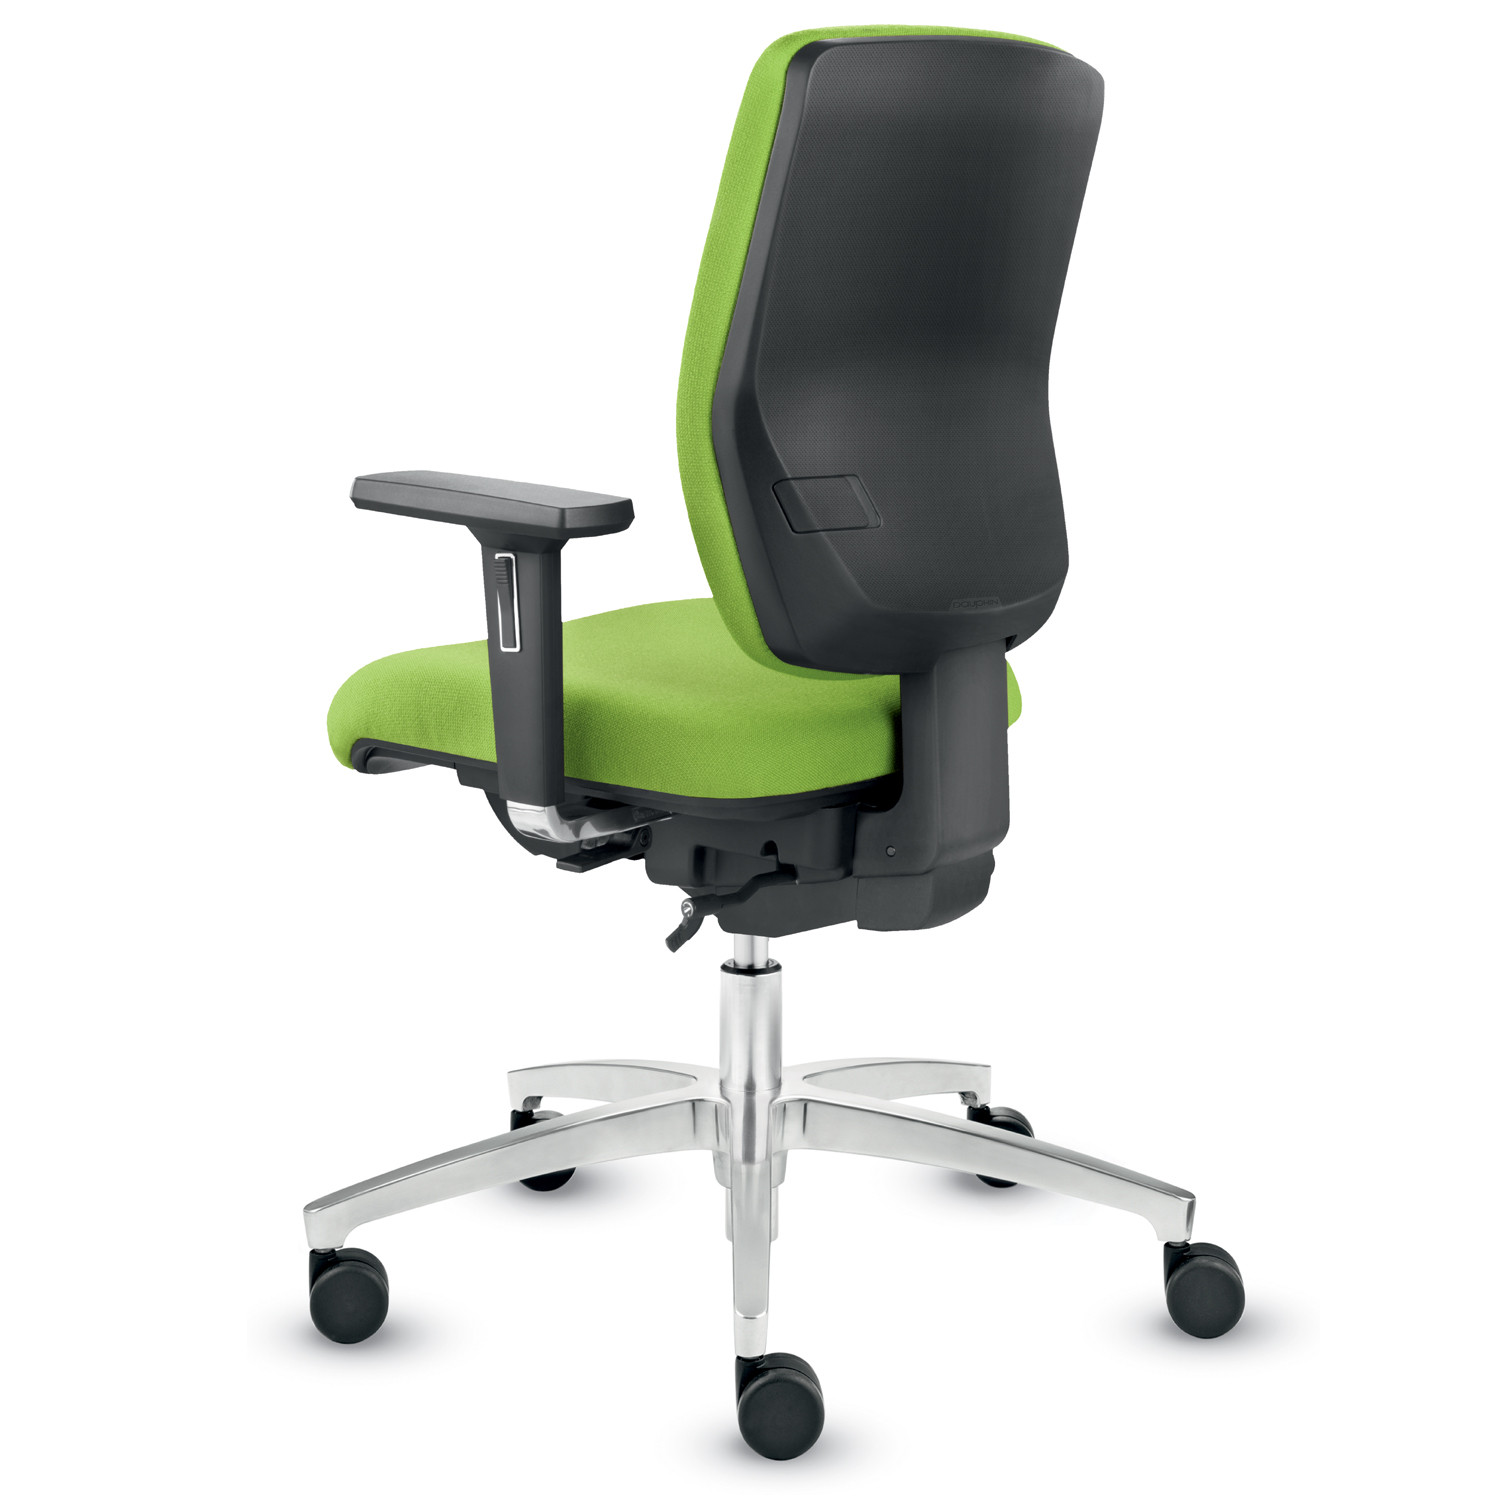 Shape Elan Office Seating